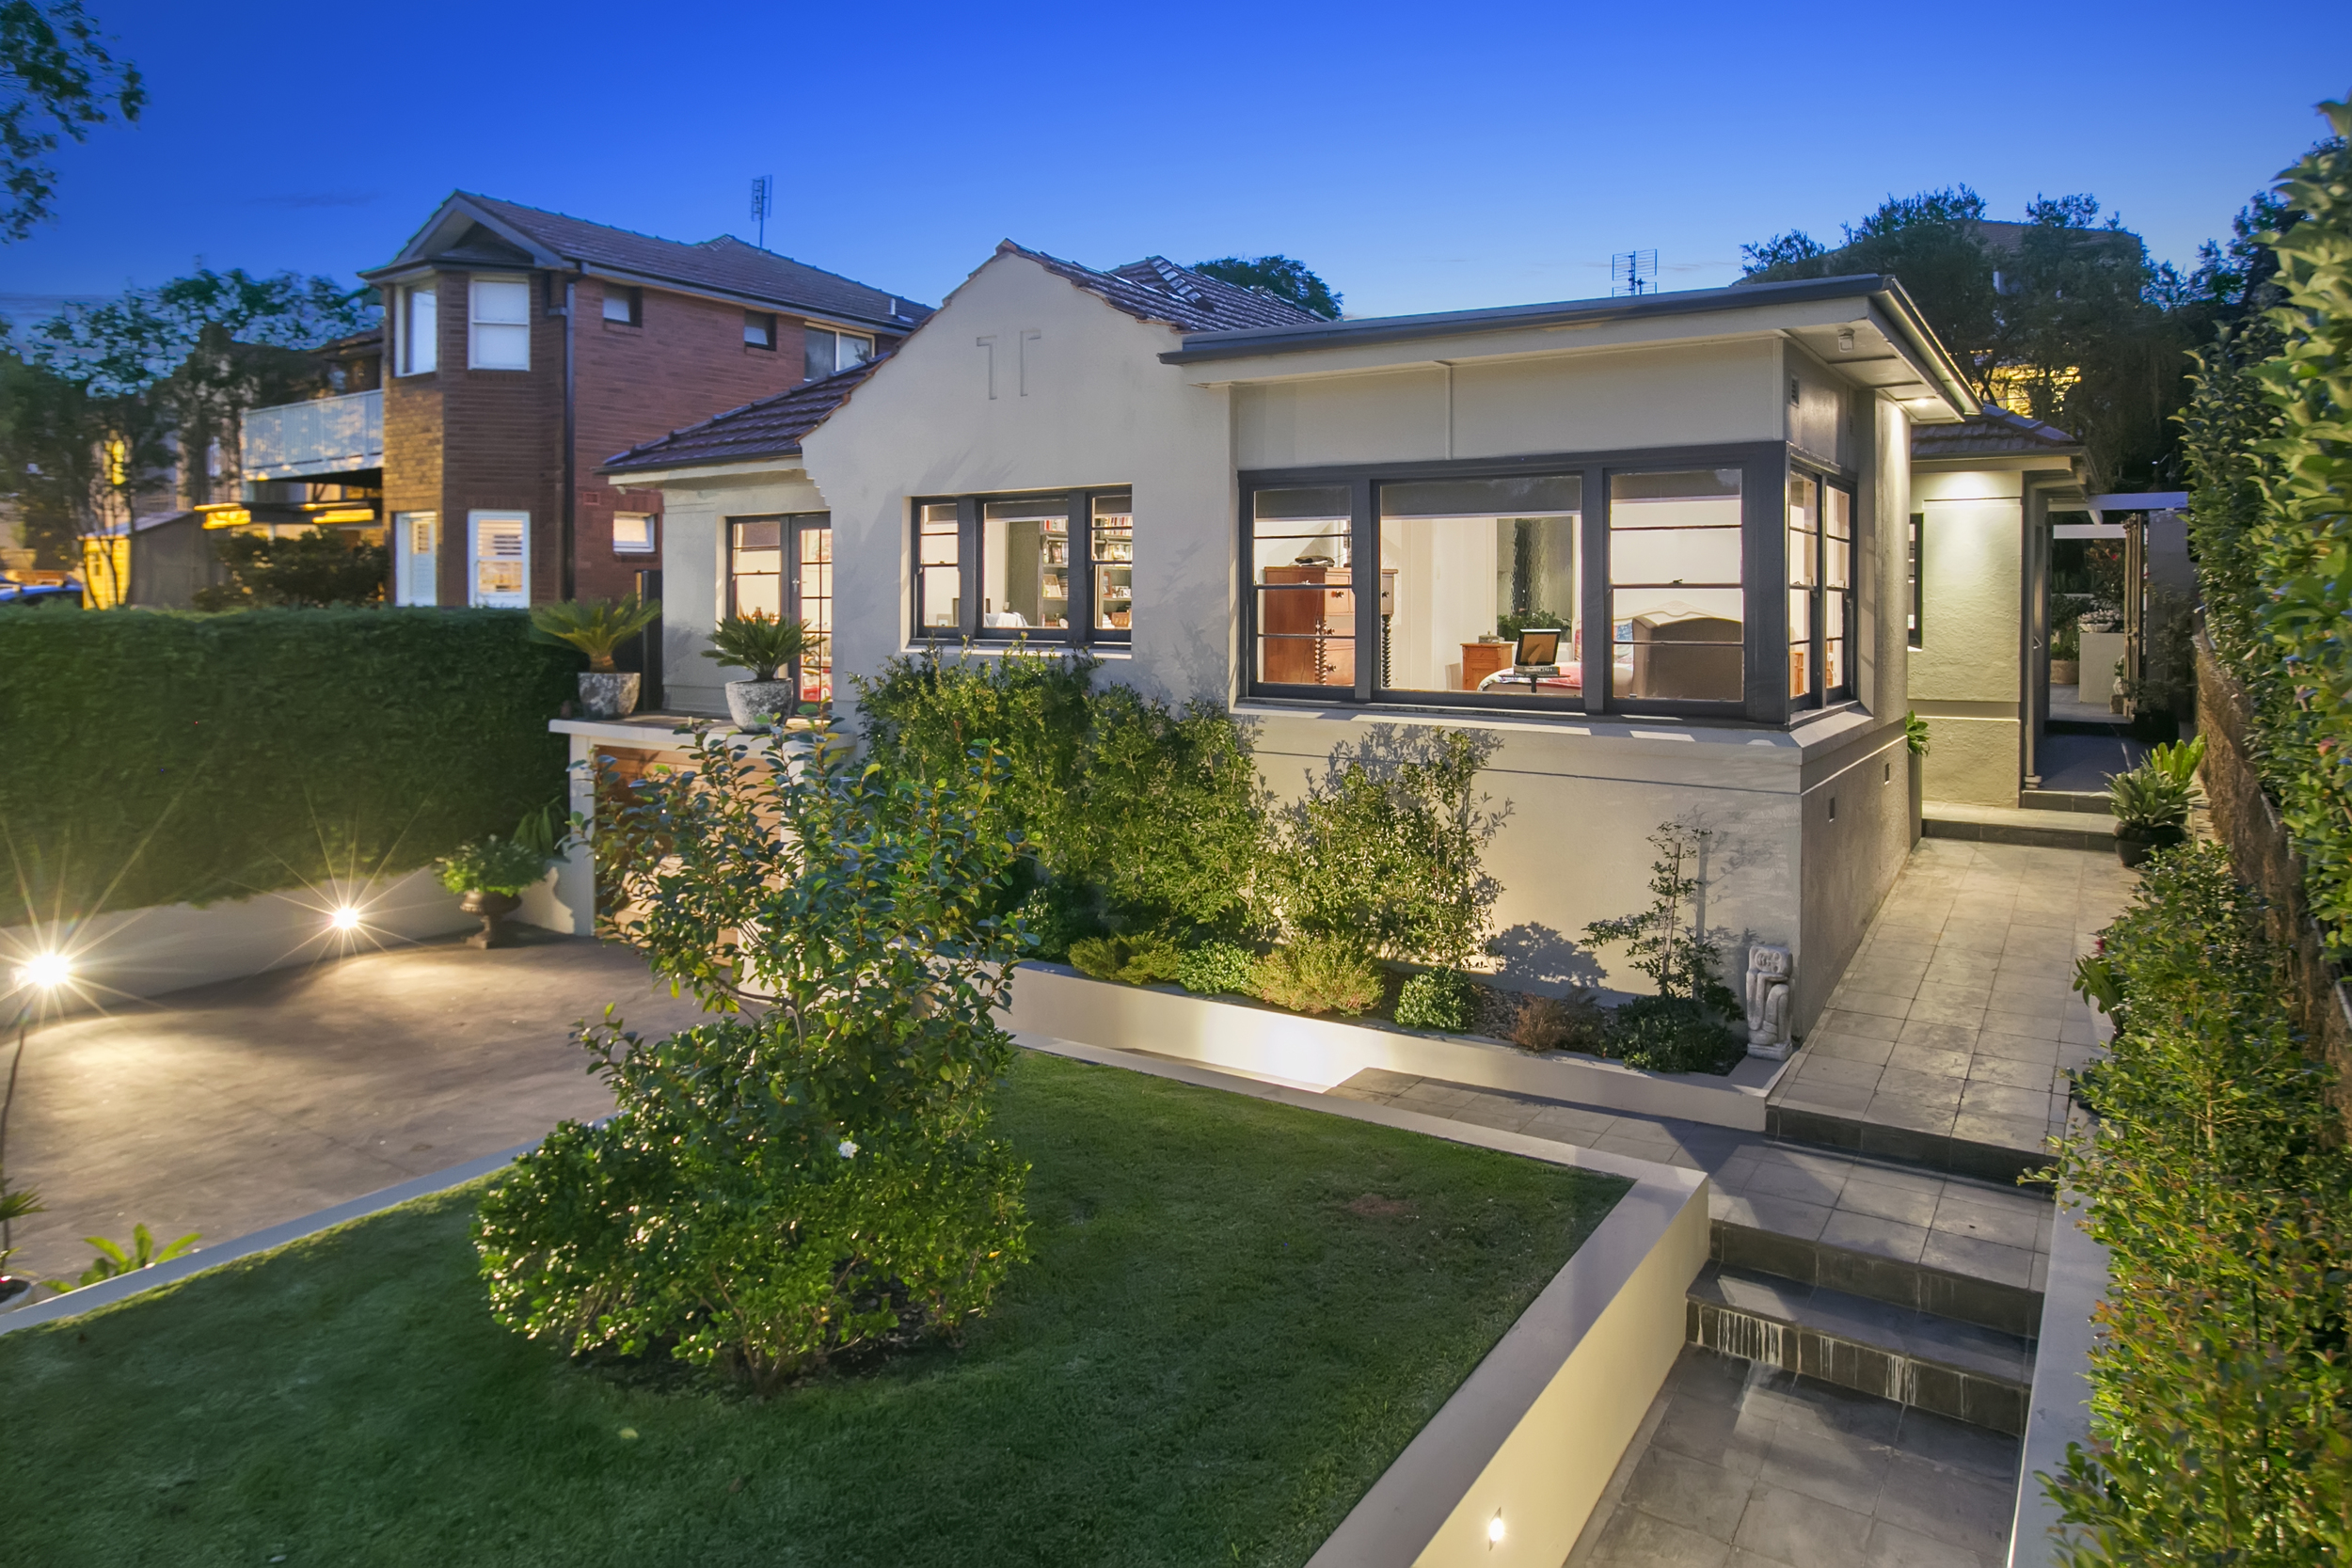 53 WOODLAND STREETBALGOWLAH HEIGHTS -